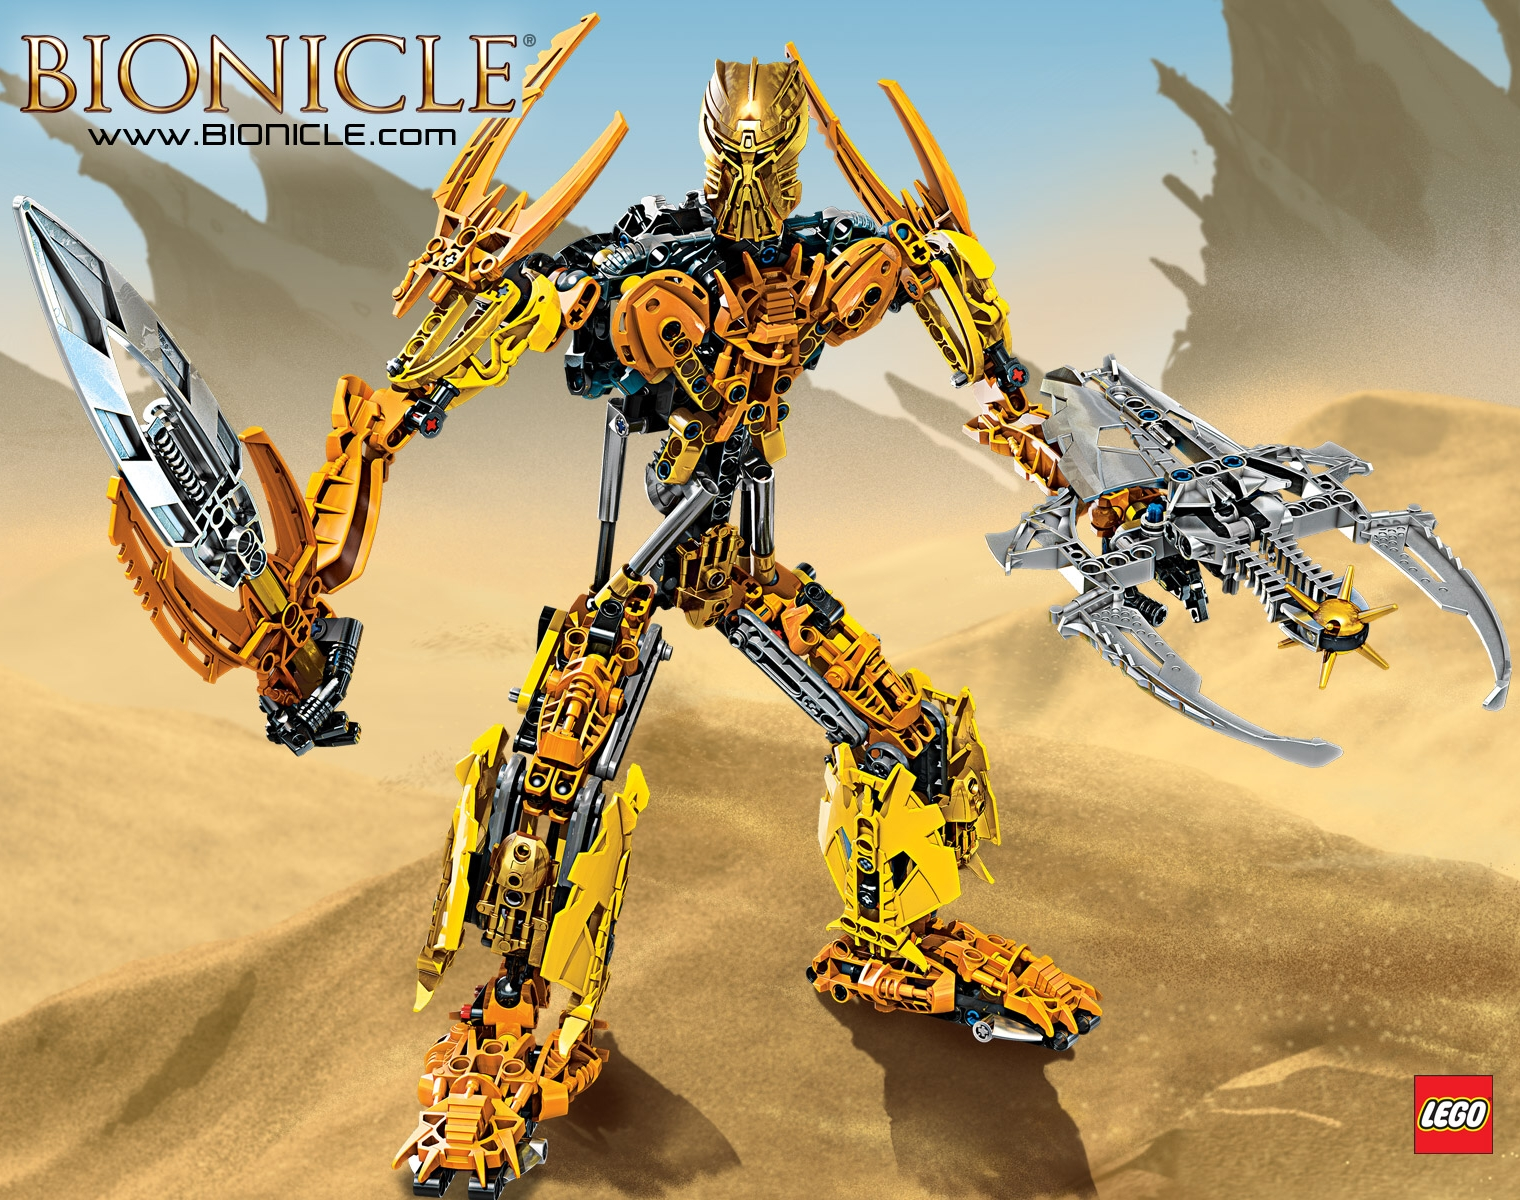 Mata Nui (Being) - The Bionicle Wiki - The Wikia wiki about ...